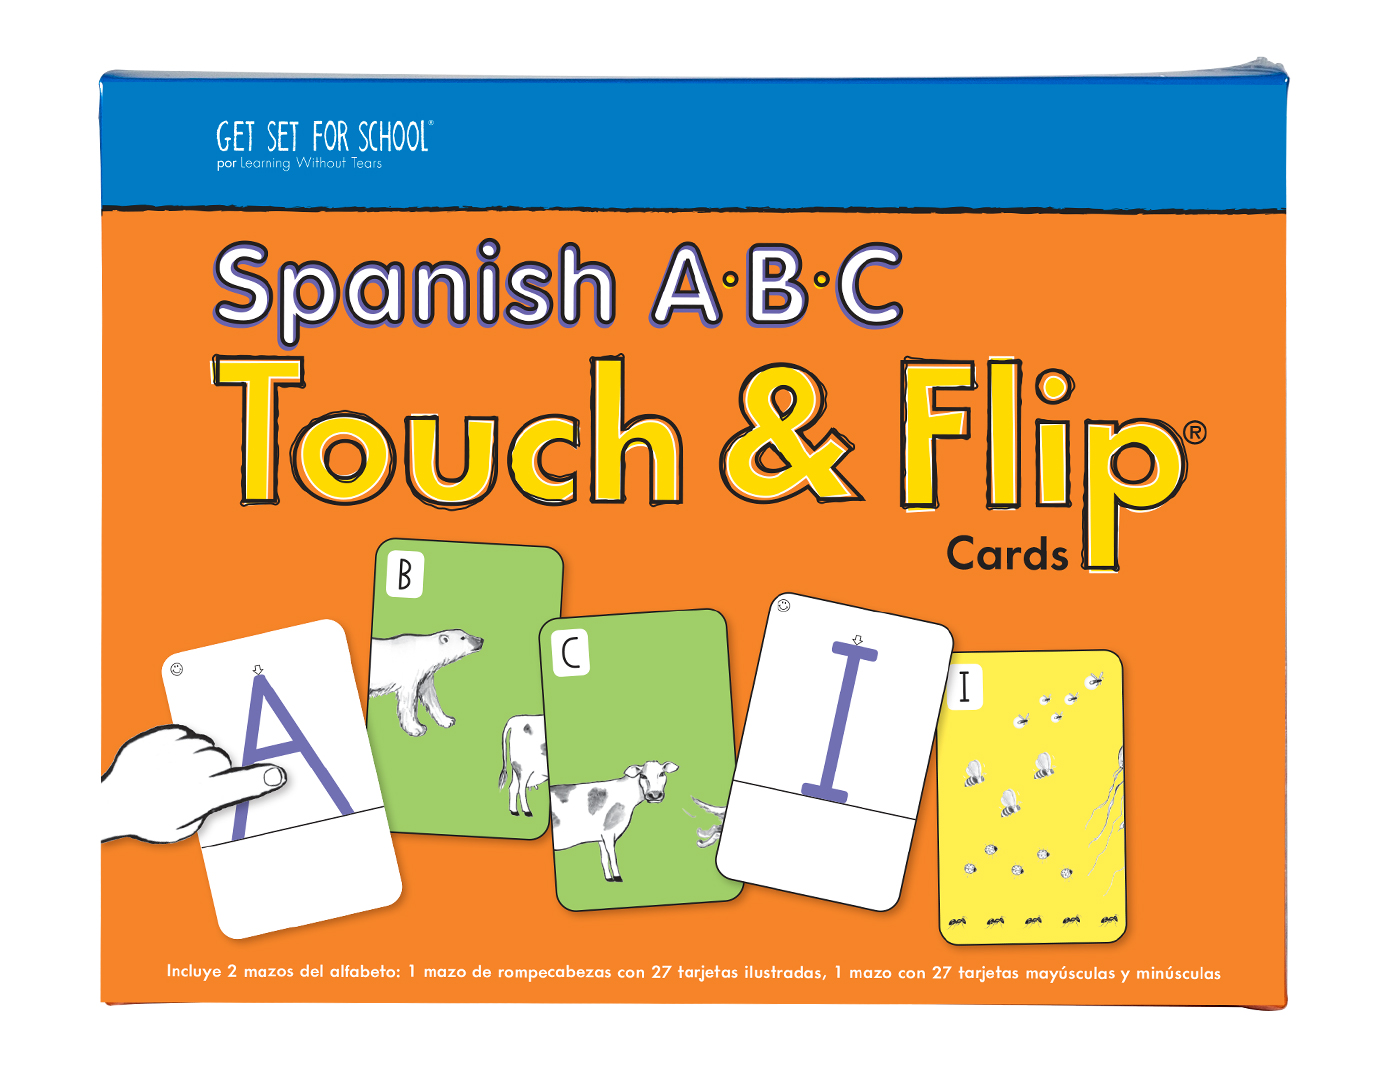 A-B-C Touch & Flip® Cards in Spanish